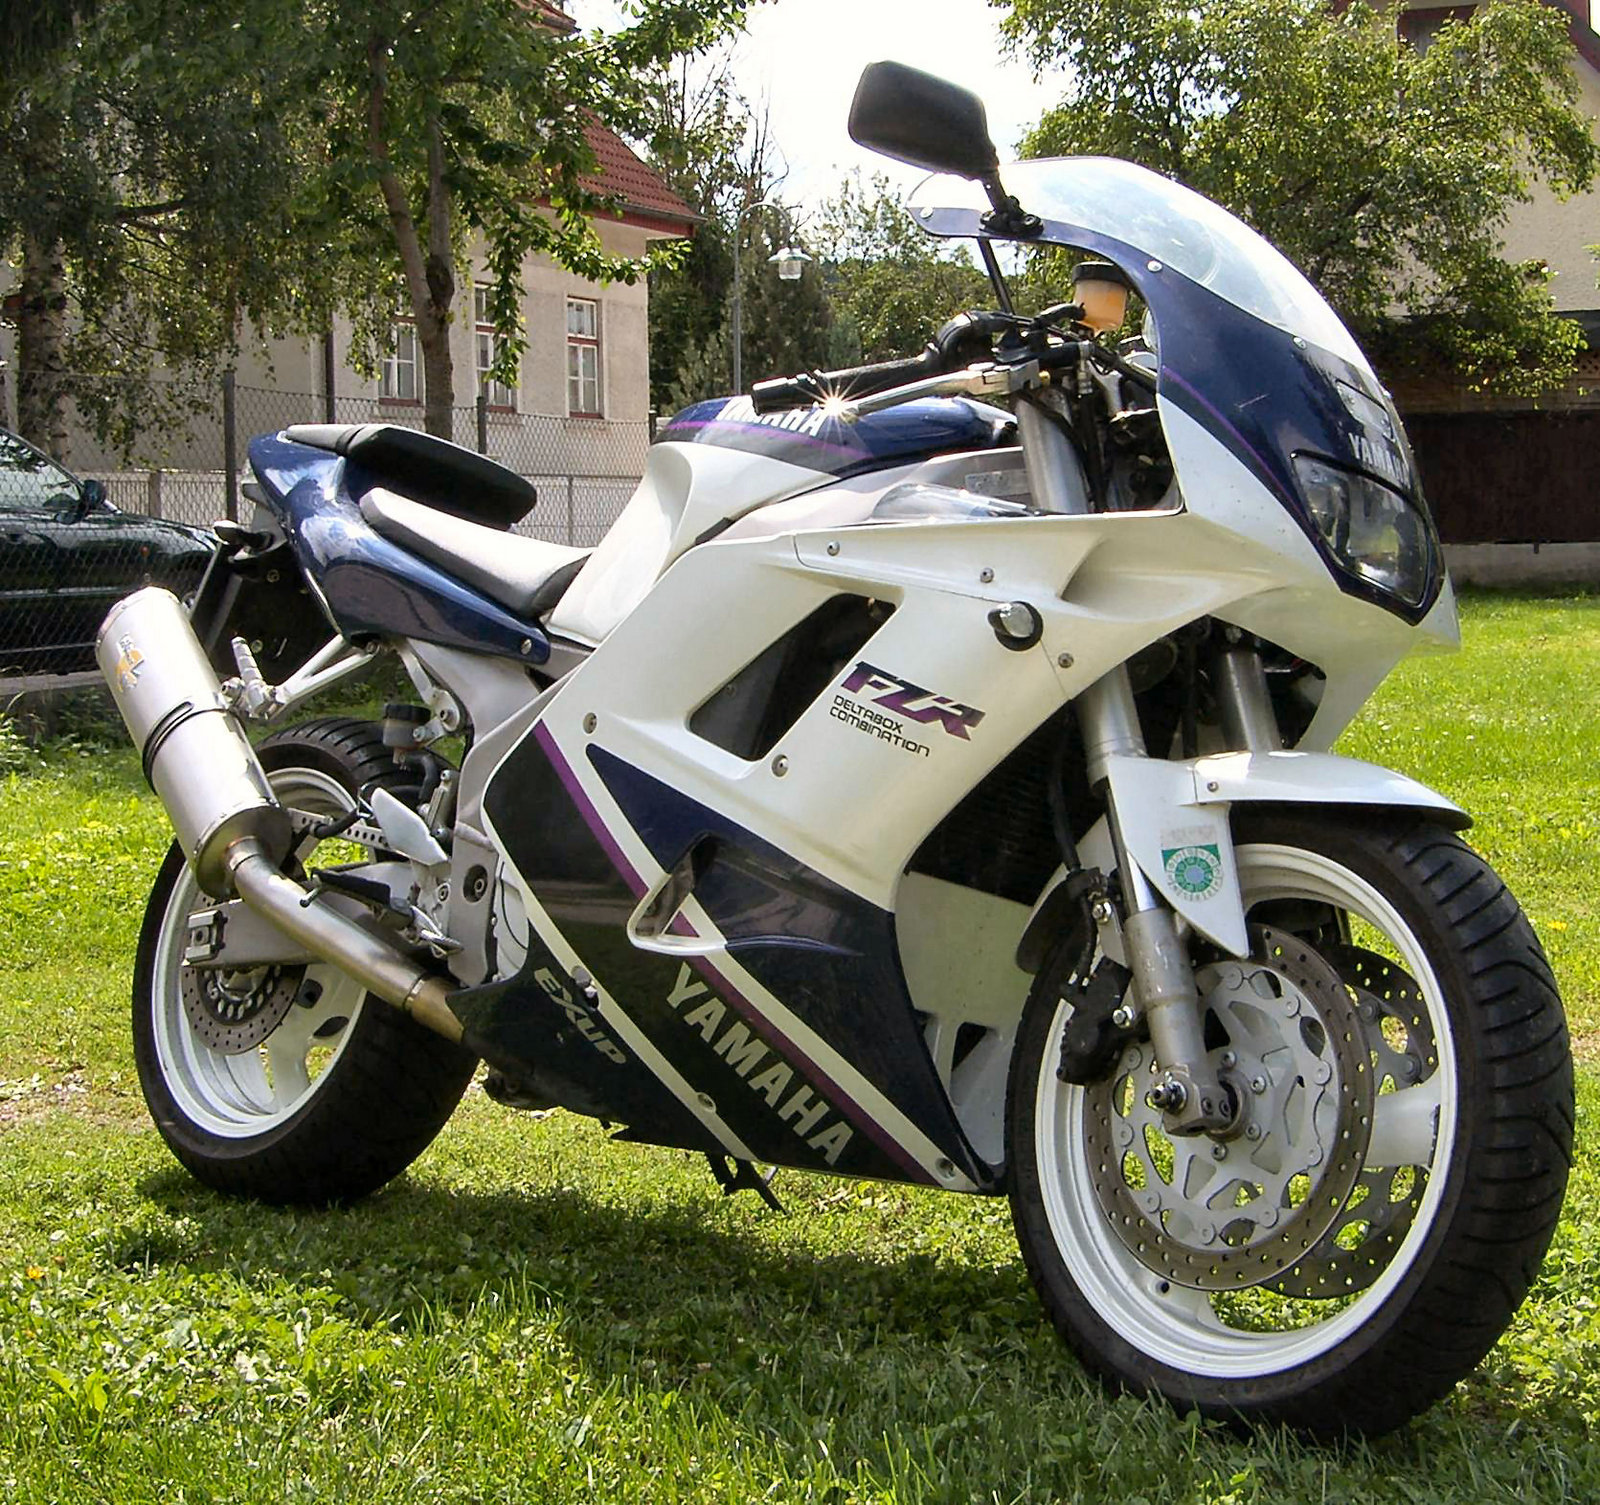 1987 1996 yamaha fzr1000 picture 176982 motorcycle. Black Bedroom Furniture Sets. Home Design Ideas